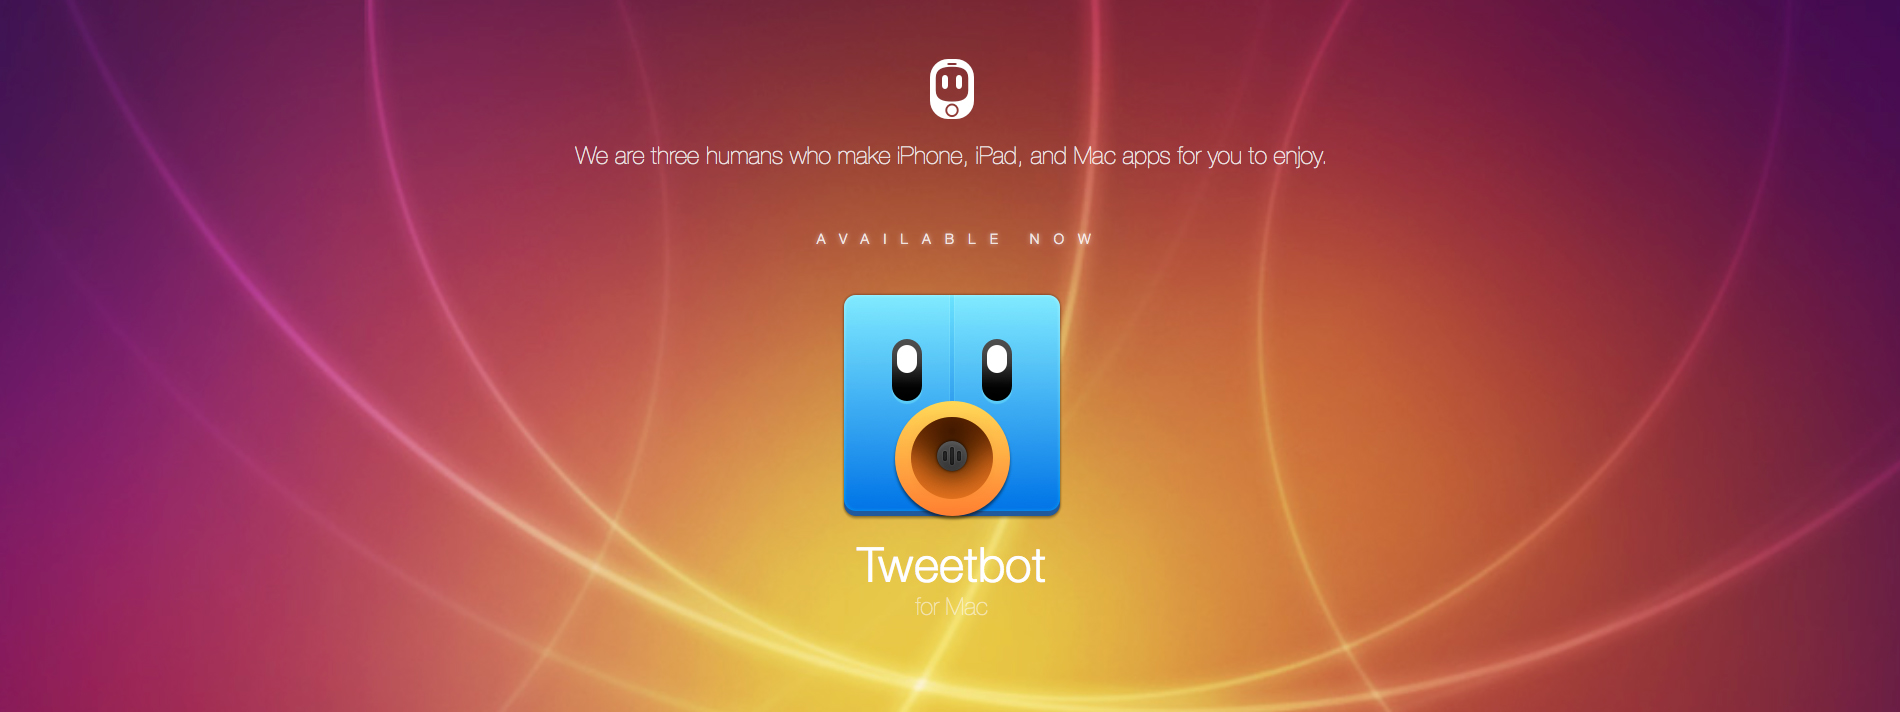 Tweetbot 2.0 for Mac arrives with a new look and a nice price cut